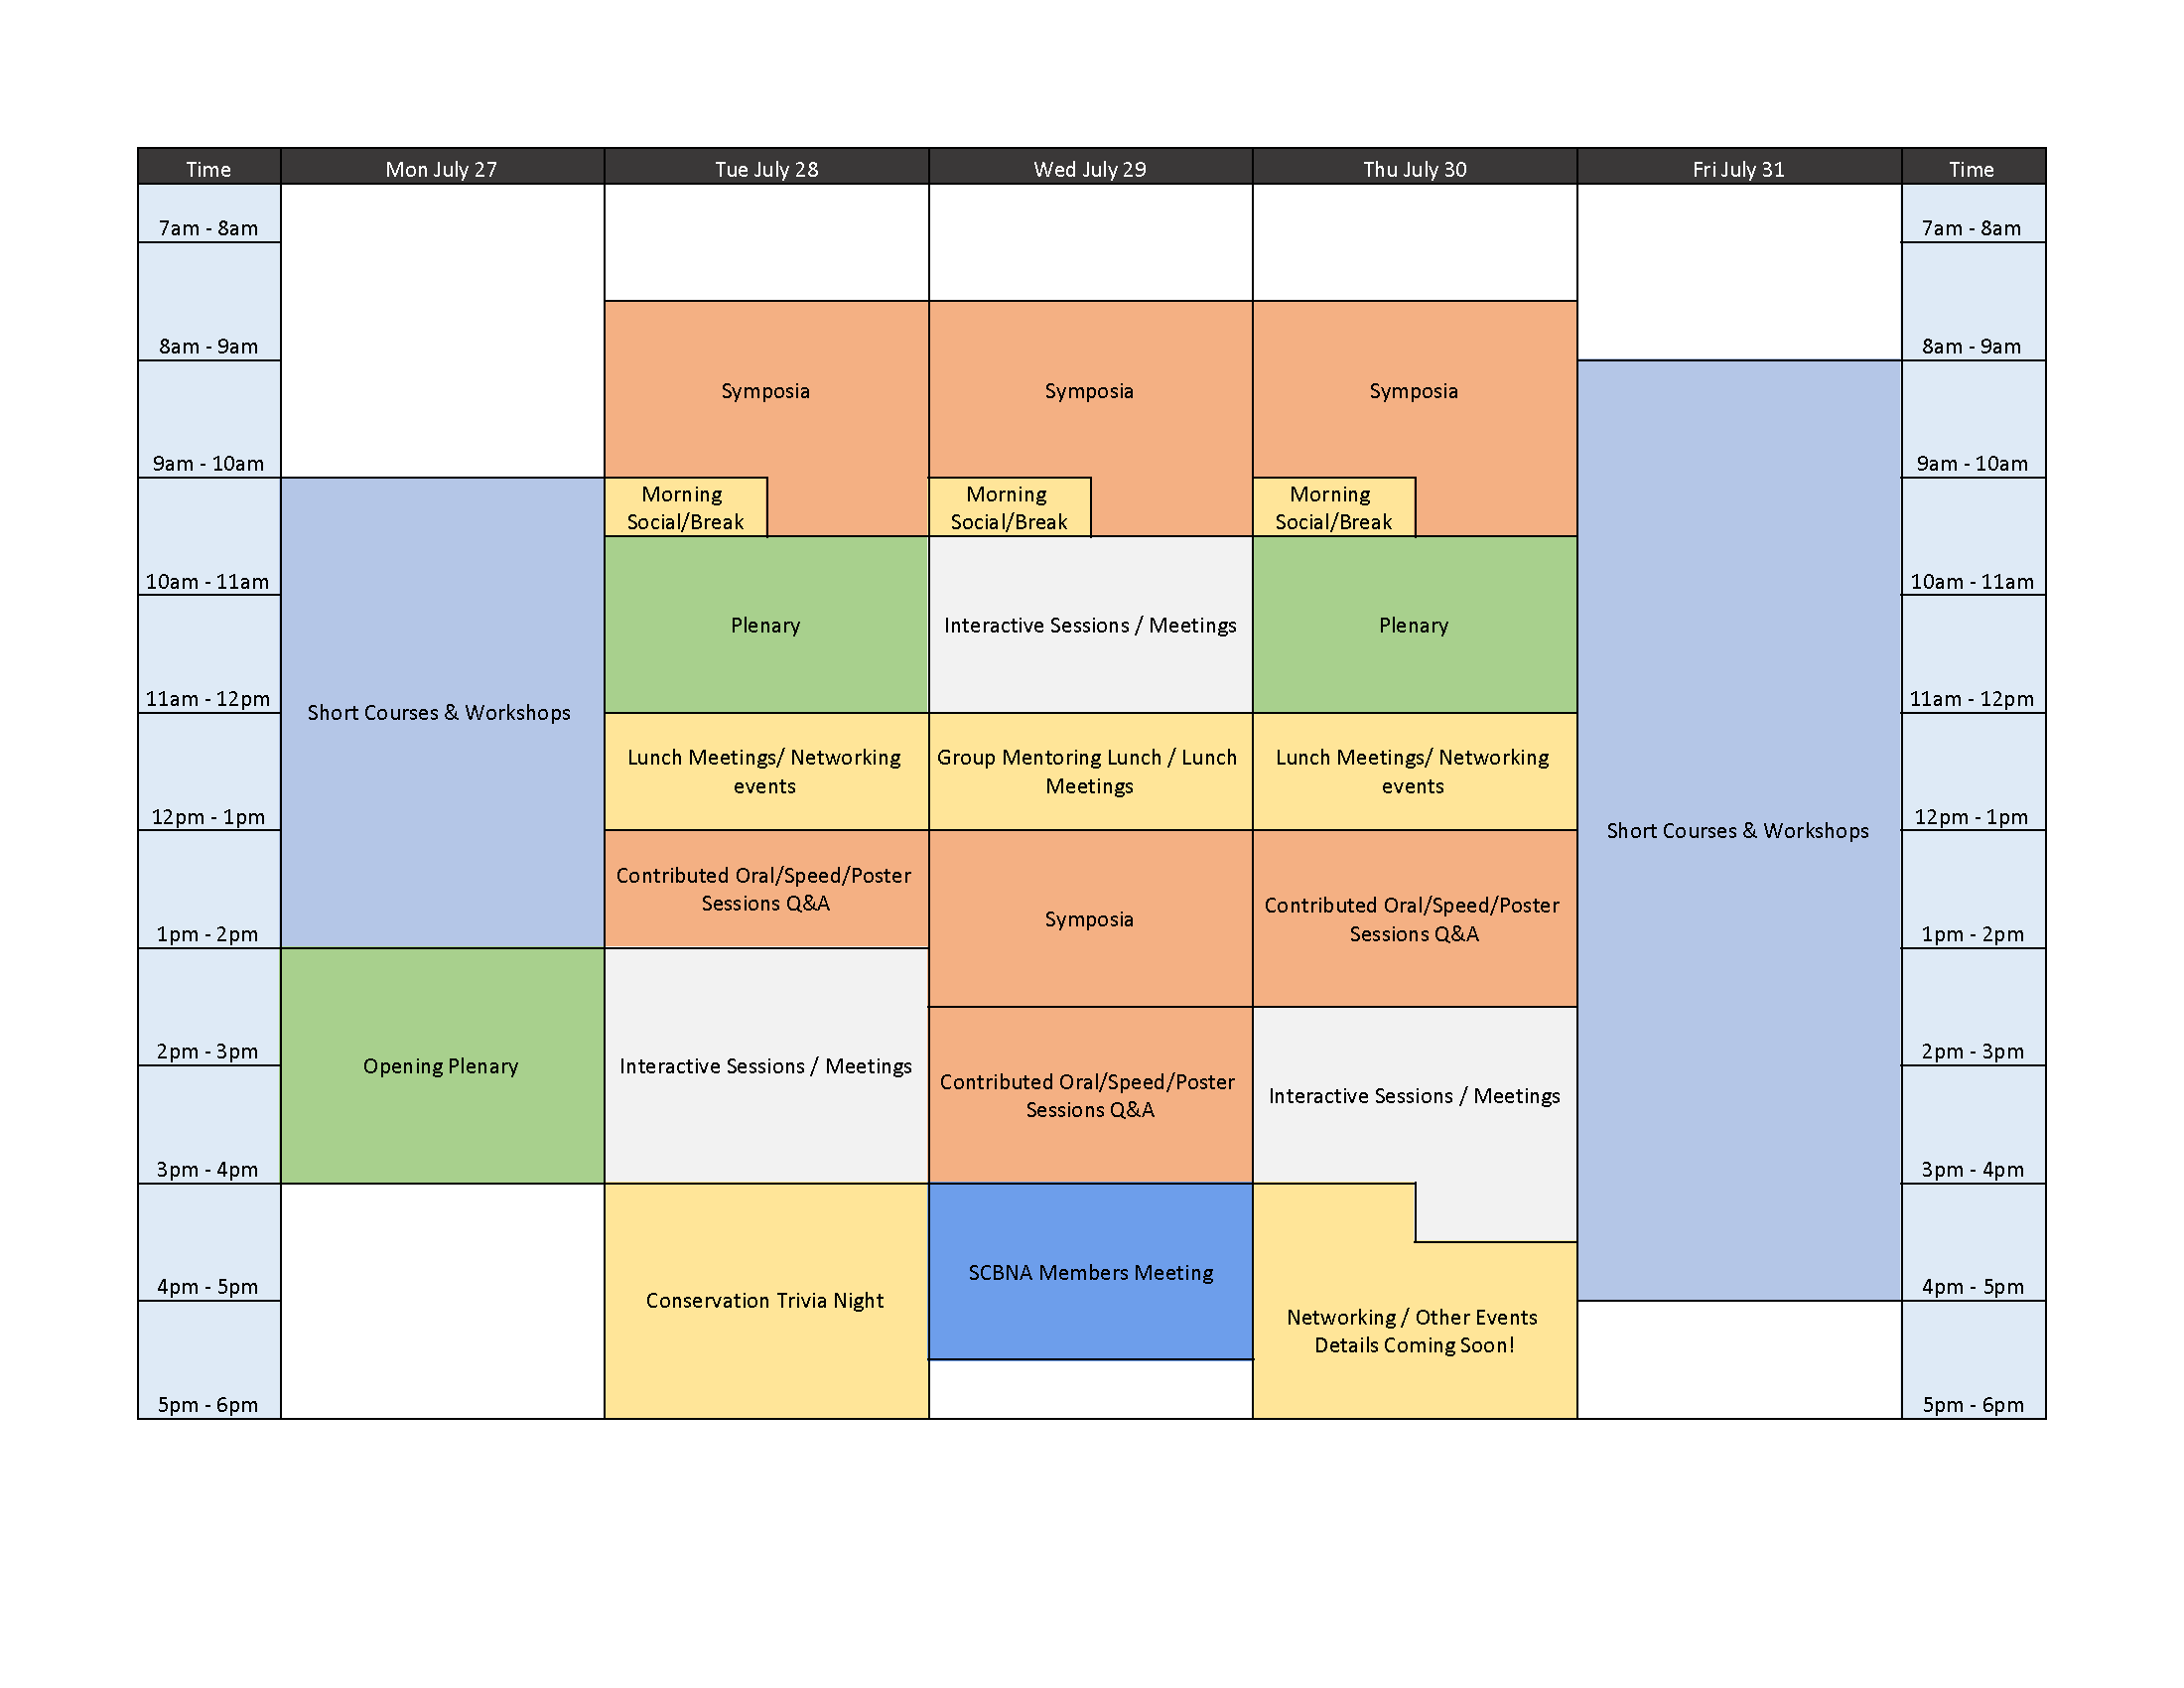 schedule-at-a-glance for NACCB 2020